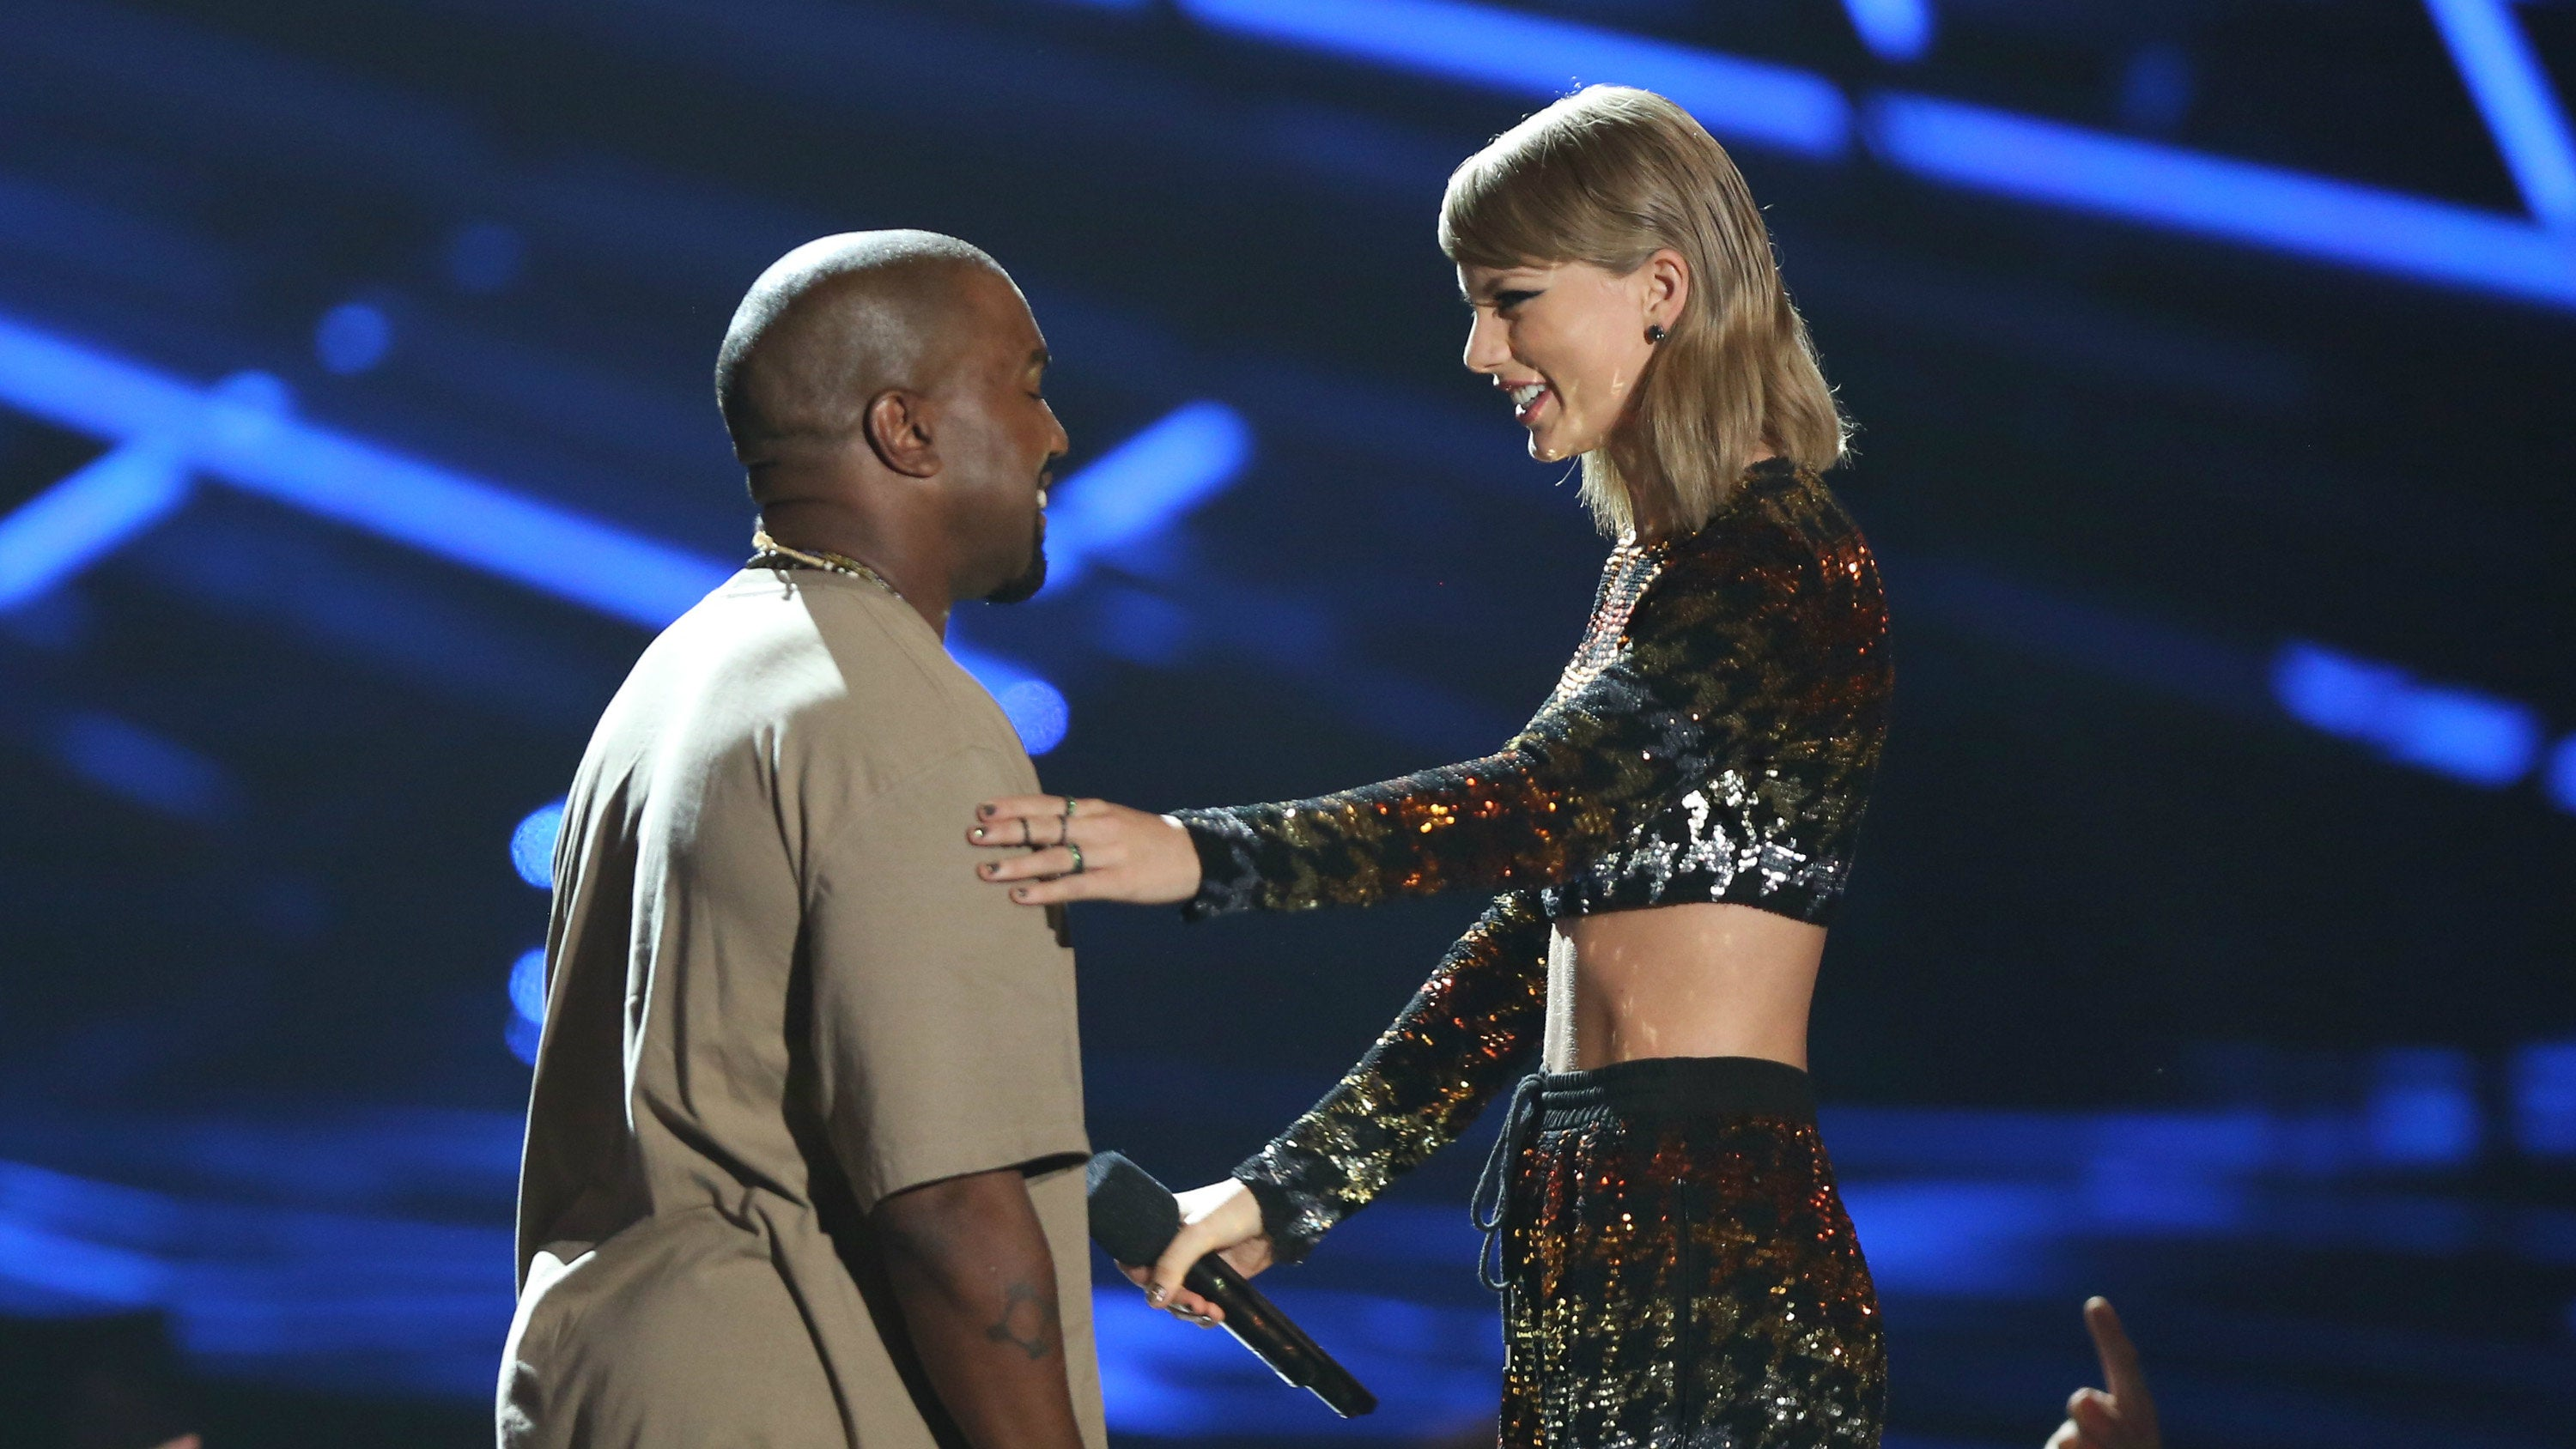 Kanye West May Have Broken The Law By Recording Phone Call With Taylor Swift